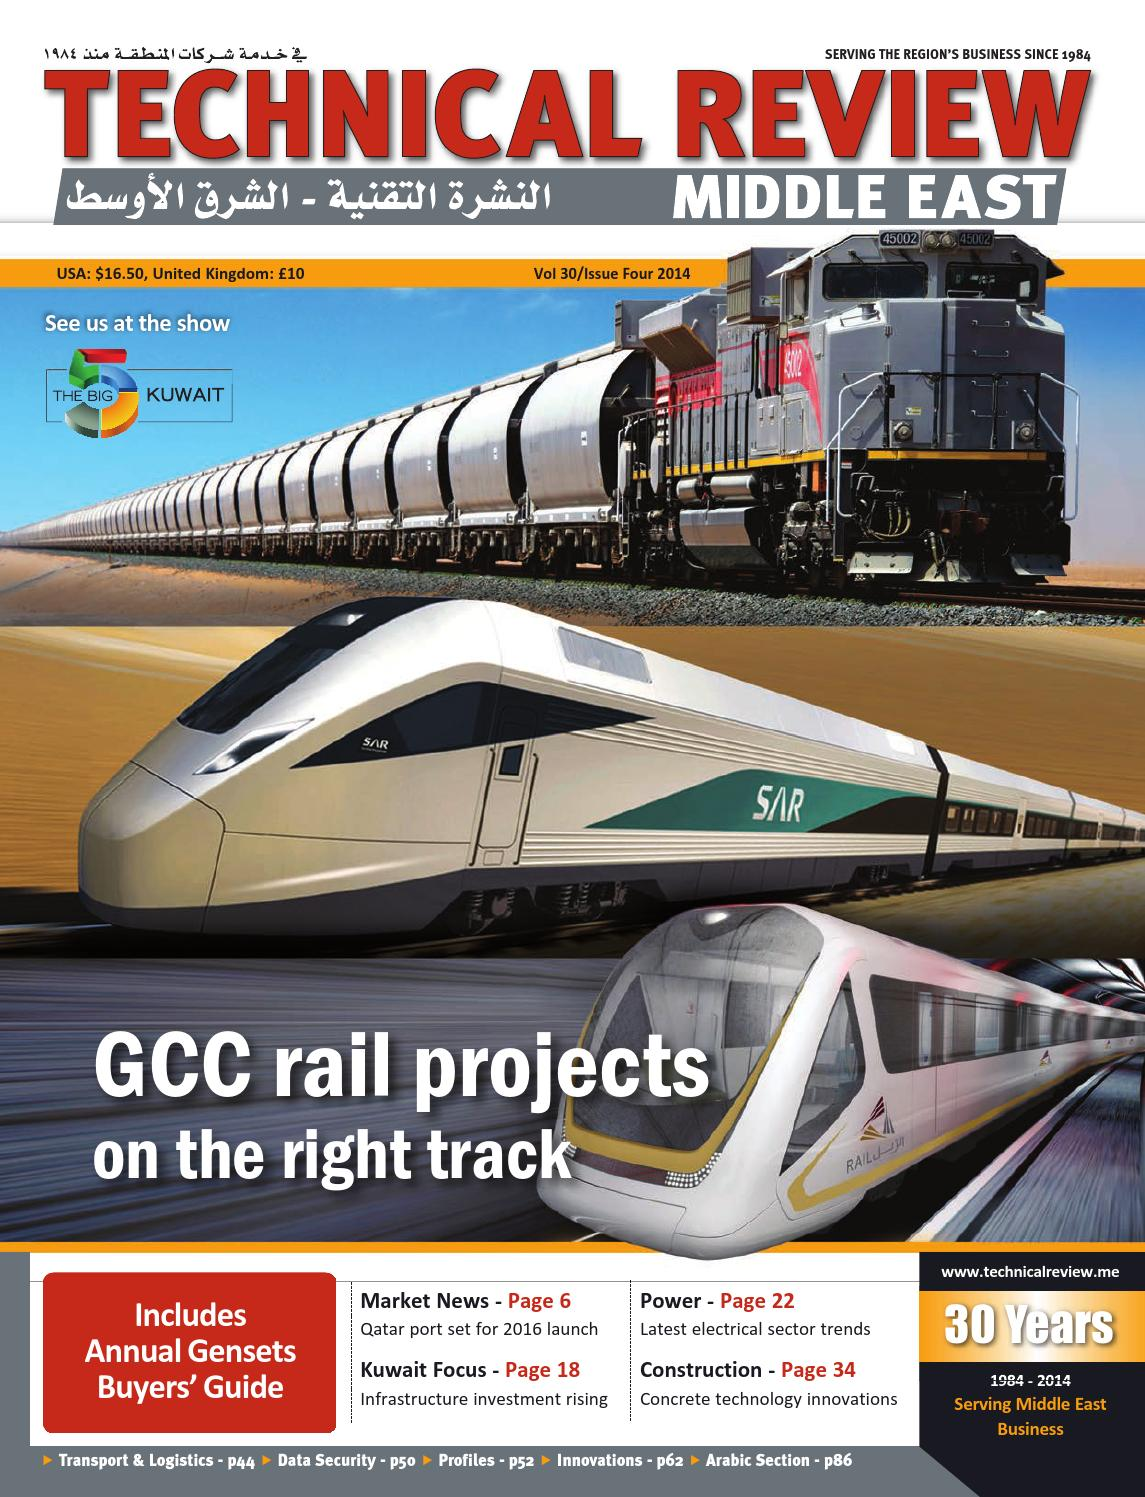 Technical Review Middle East 4 2014 by Alain Charles